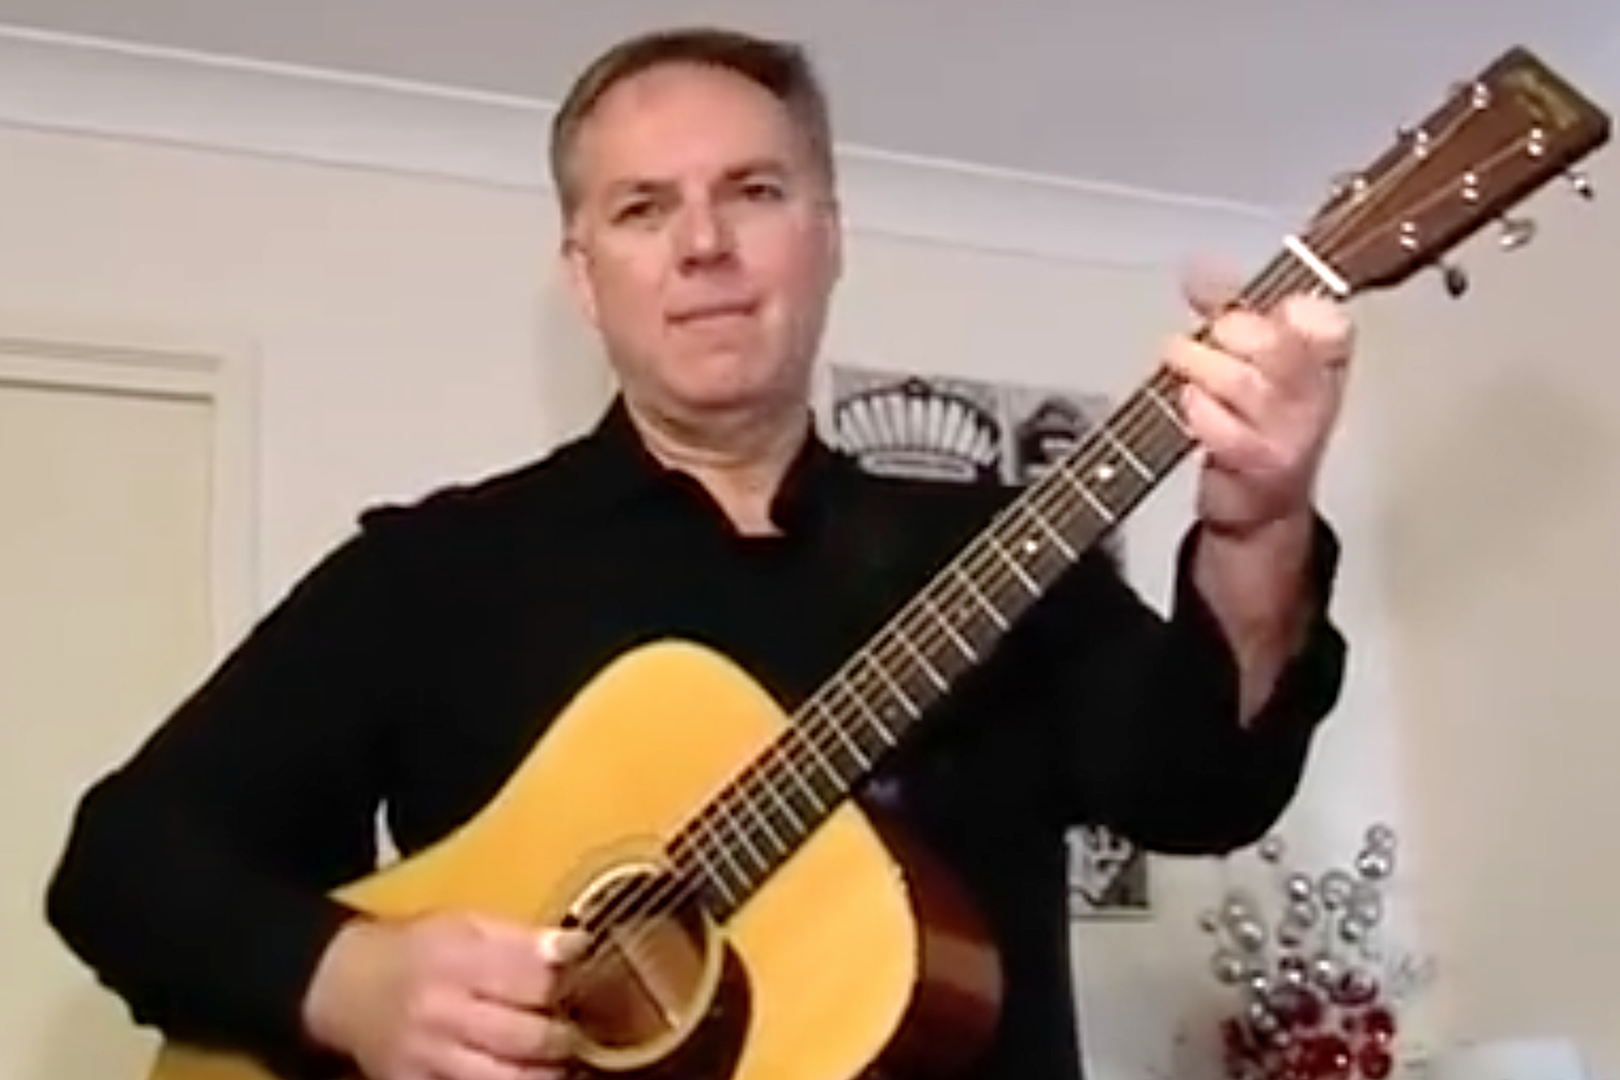 Australian Guitarist Plays for 125 Hours to Break World Record